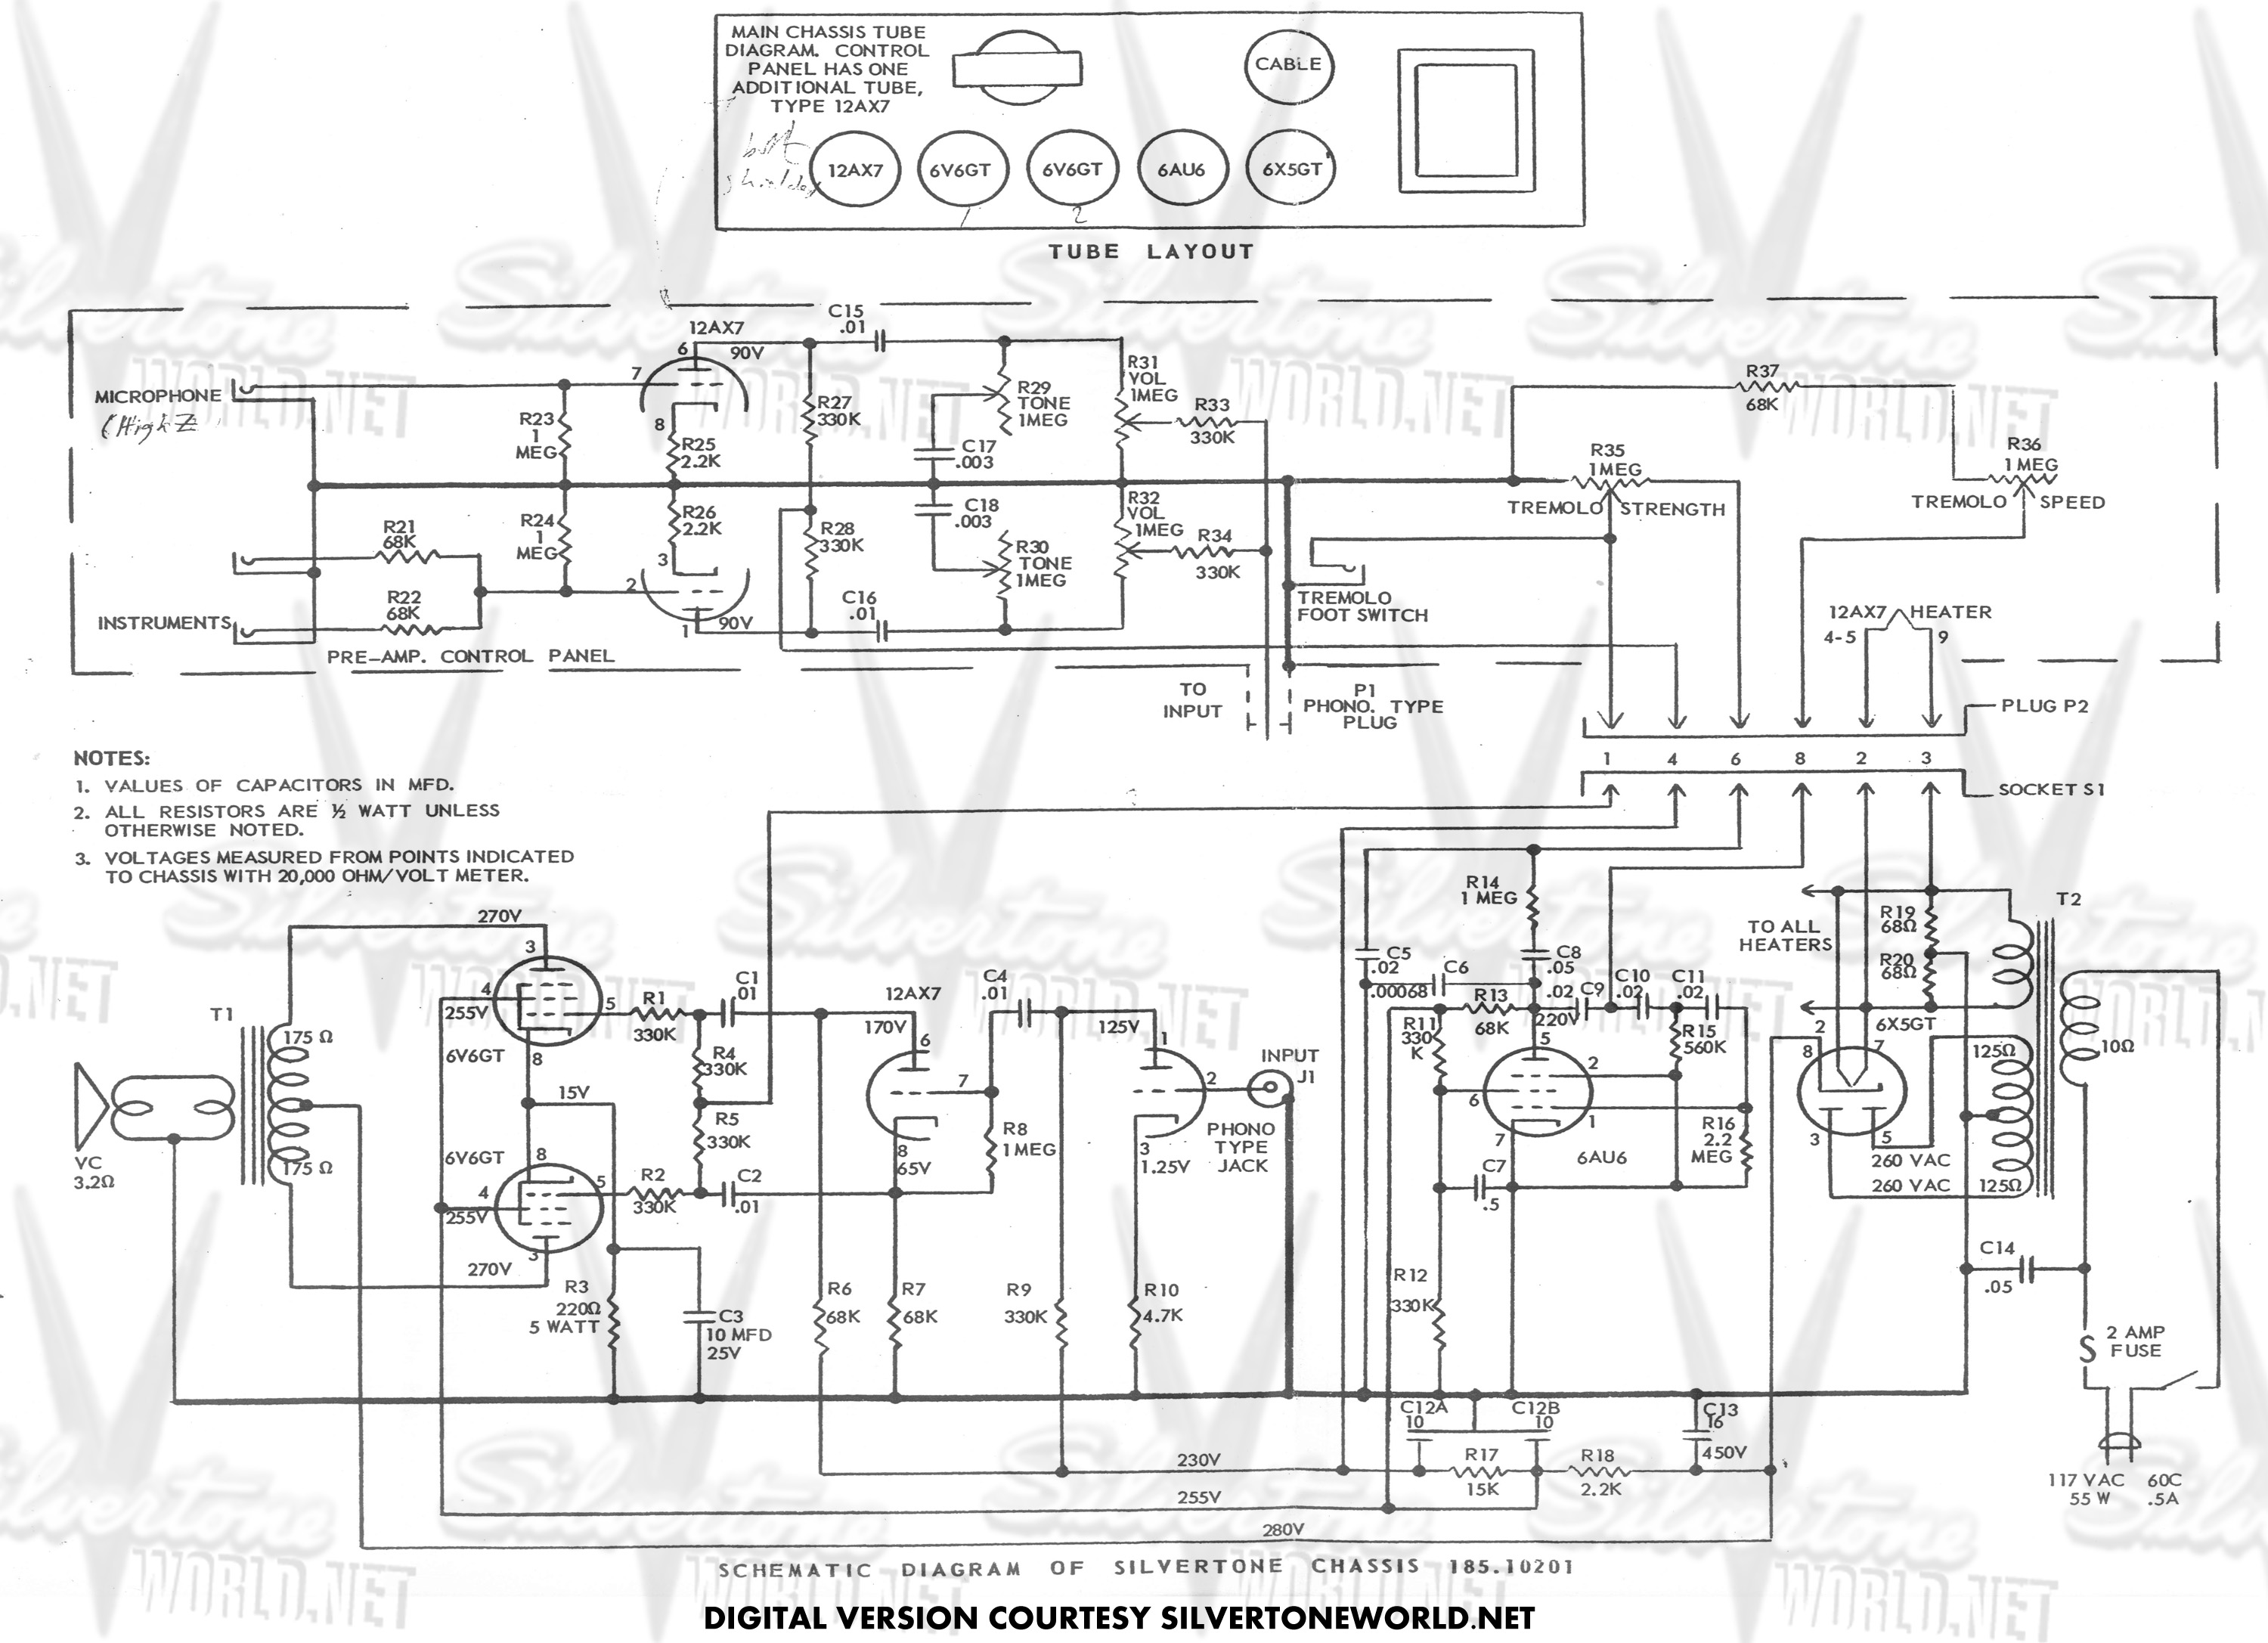 silvertone world division 57 schematics, manuals and publications Jbl Wiring Diagram silvertone wiring diagram  #2 Pressure Switch Wiring Diagram